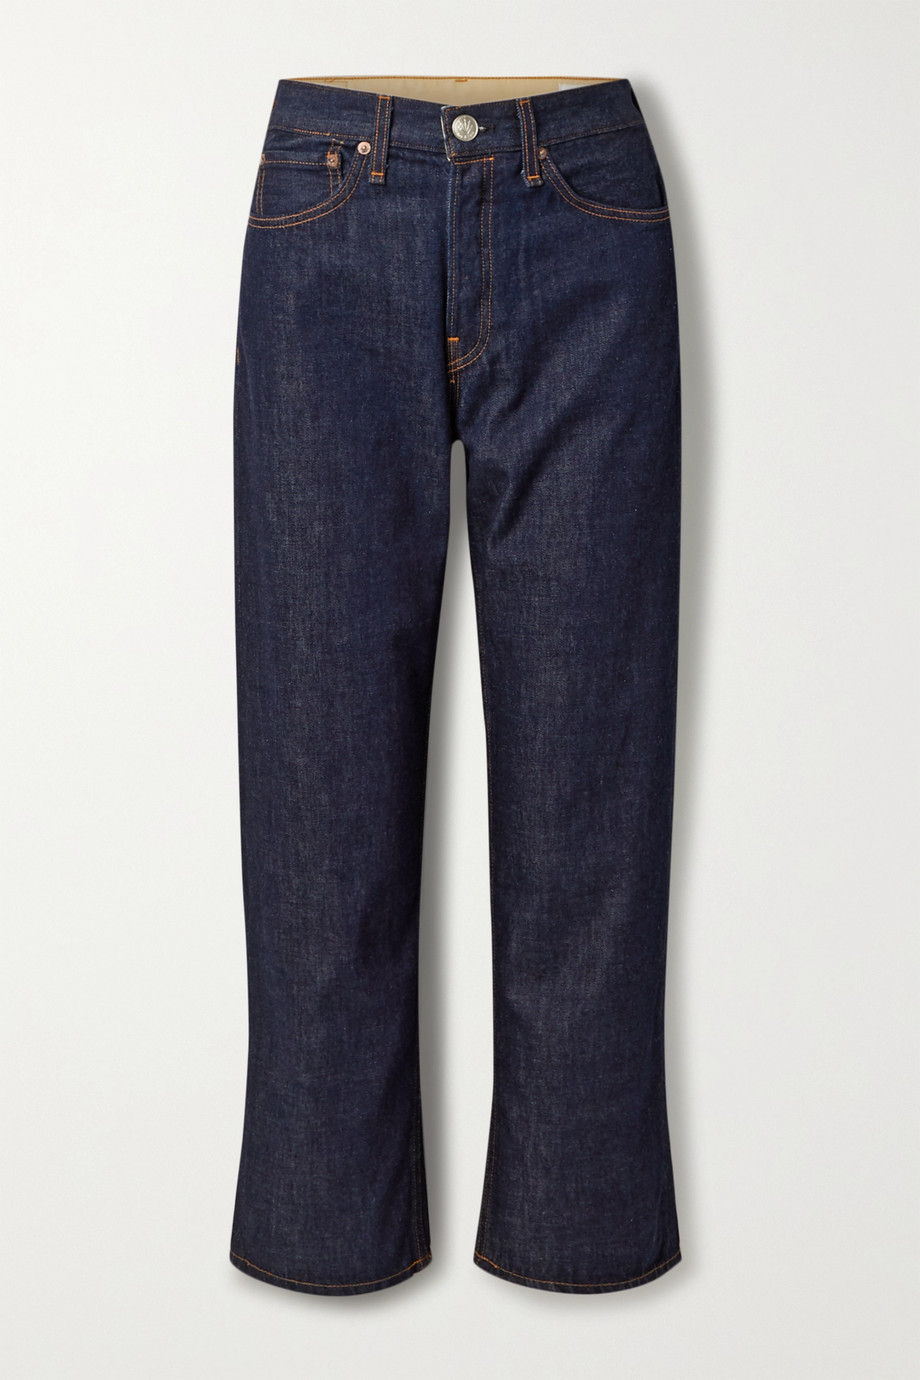 랙앤본 Rag & Bone Maya high-rise straight-leg jeans,Dark denim